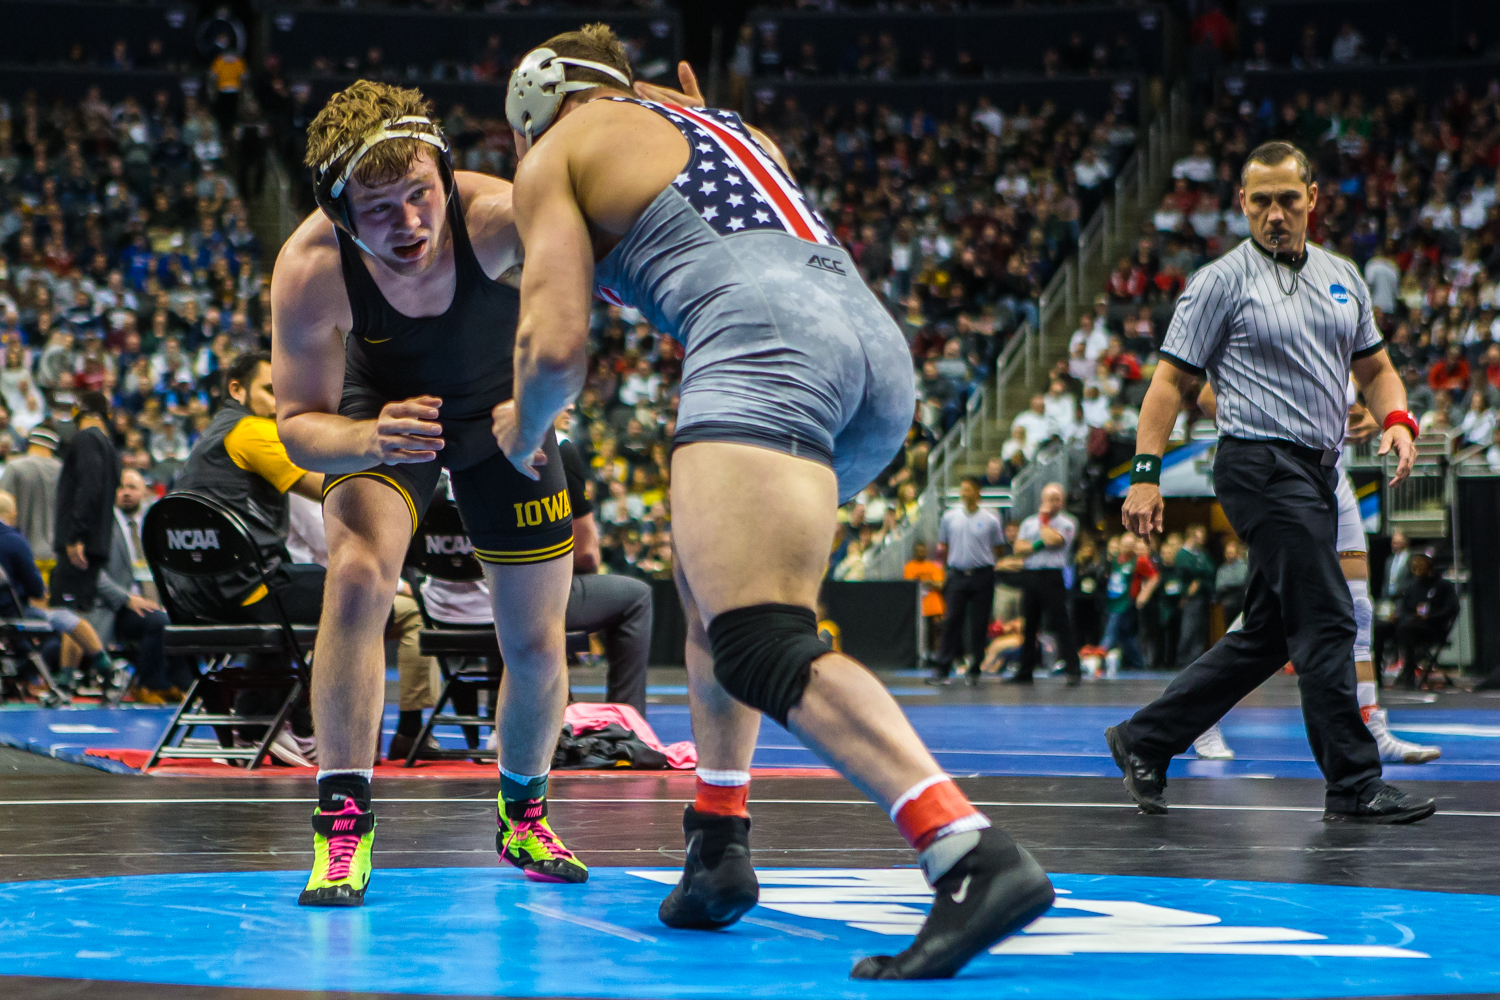 Iowa%E2%80%99s+197-pound+Jacob+Warner+wrestles+Virginia+Tech%E2%80%99s+Tom+Sleigh+during+the+fourth+session+of+the+2019+NCAA+D1+Wrestling+Championships+at+PPG+Paints+Arena+in+Pittsburgh%2C+PA+on+Friday%2C+March+22%2C+2019.+Warner+won+by+decision%2C+6-2.